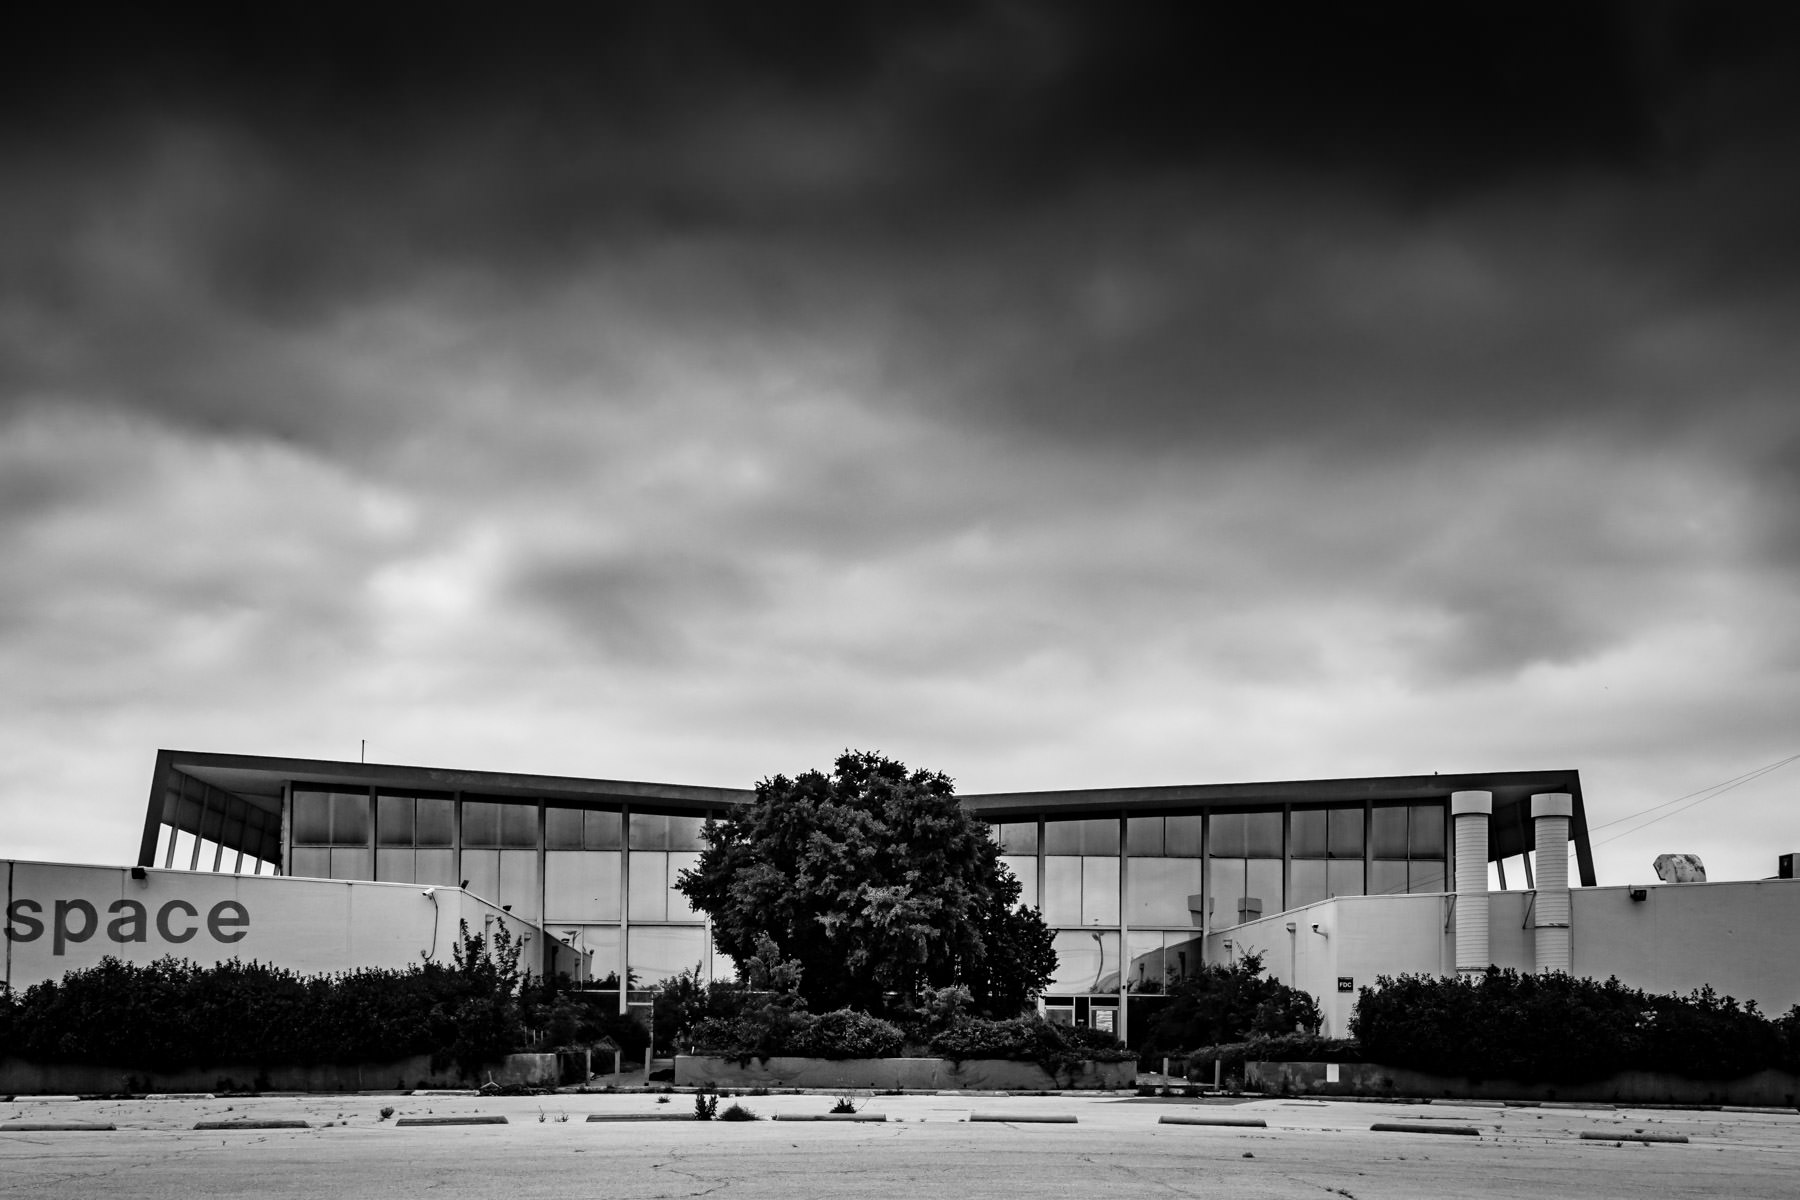 The abandoned Dalfort Aerospace headquarters (formerly Braniff Airlines' Global Operations Center), on the outskirts of Love Field, Dallas, Texas.